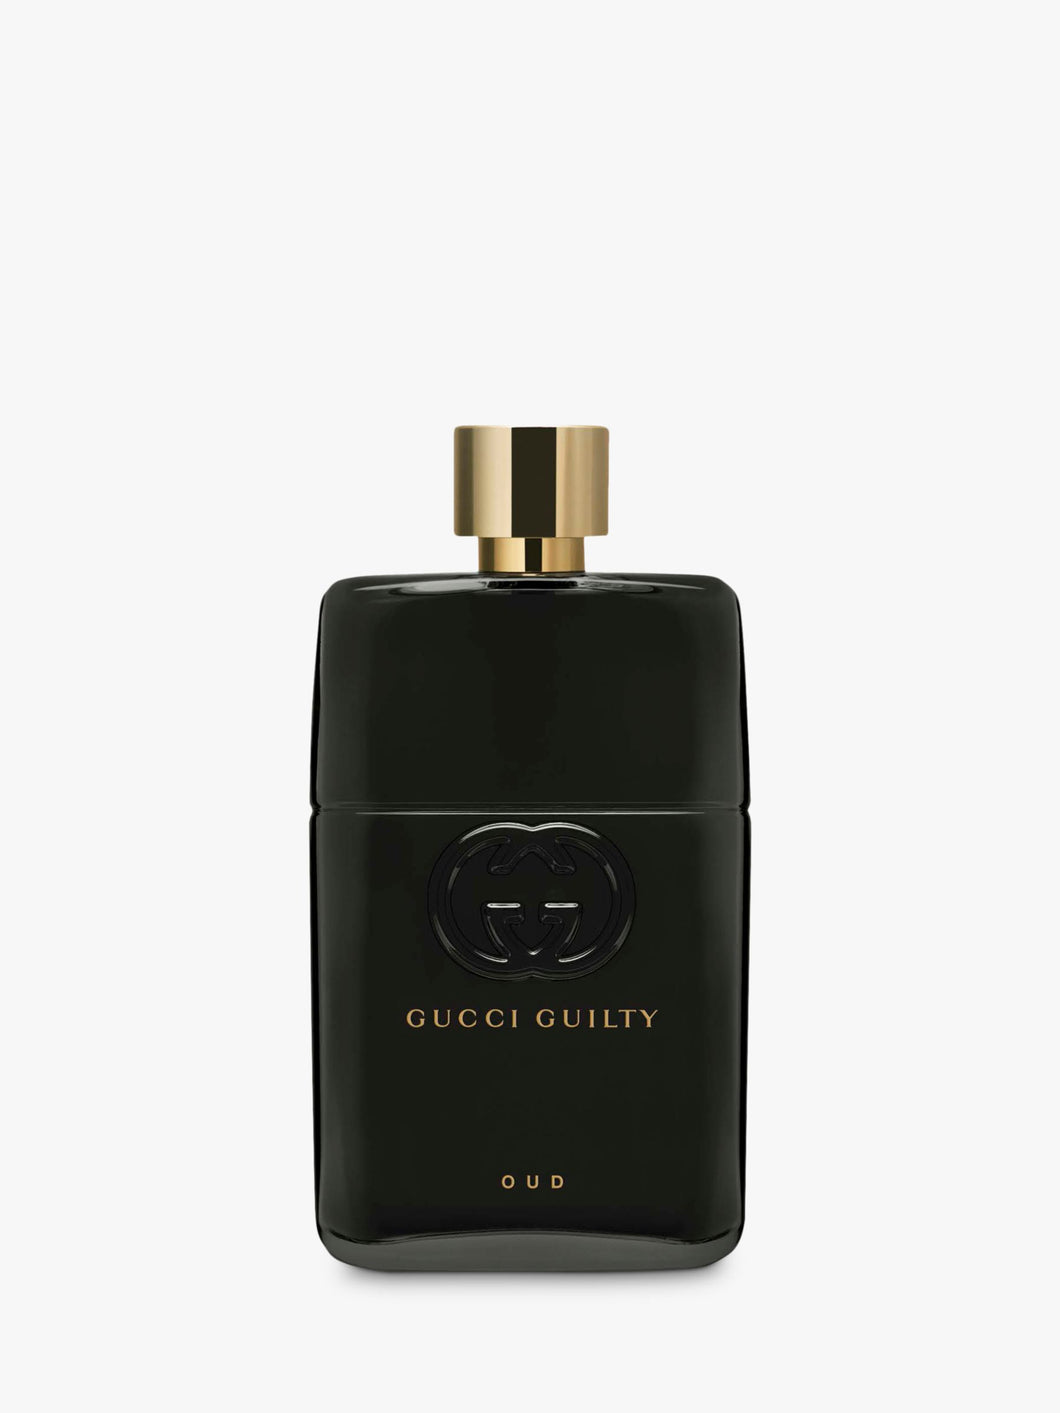 GUCCI GUILTY OUD 100ML